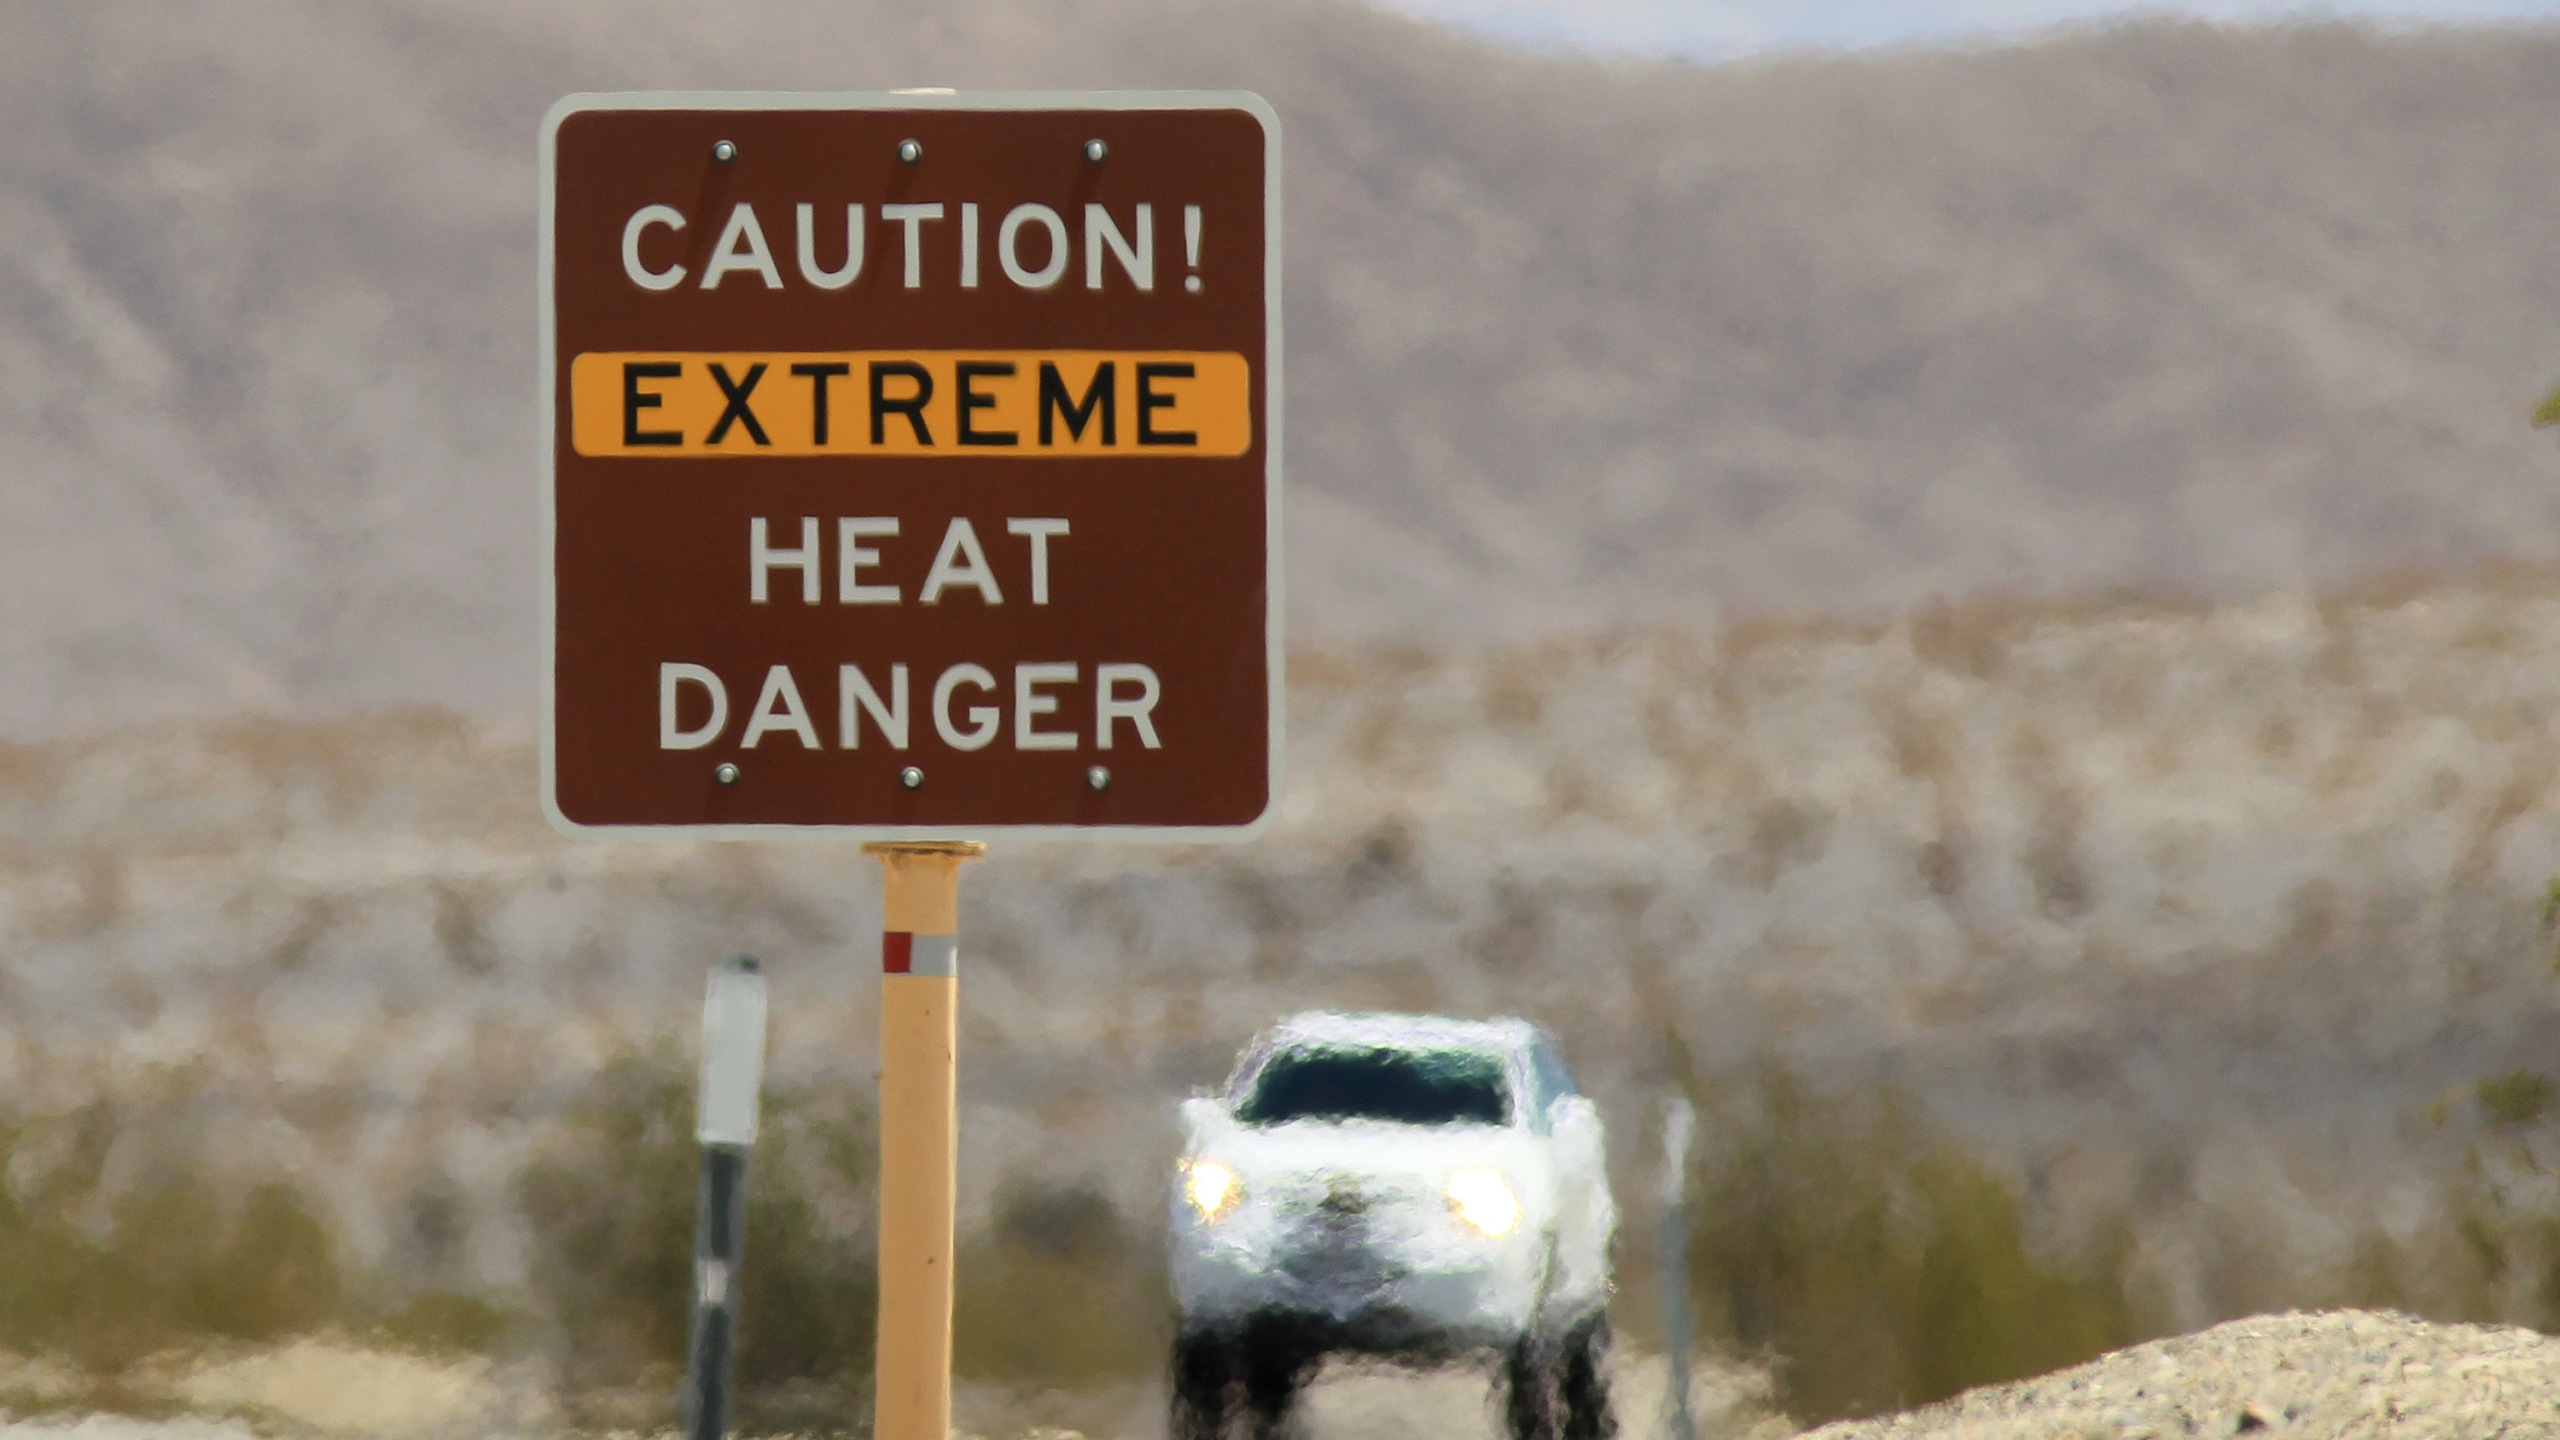 Heat waves rise near a heat danger warning sign on on July 14, 2013 in the Death Valley National Park. (Credit: David McNew/Getty Images)